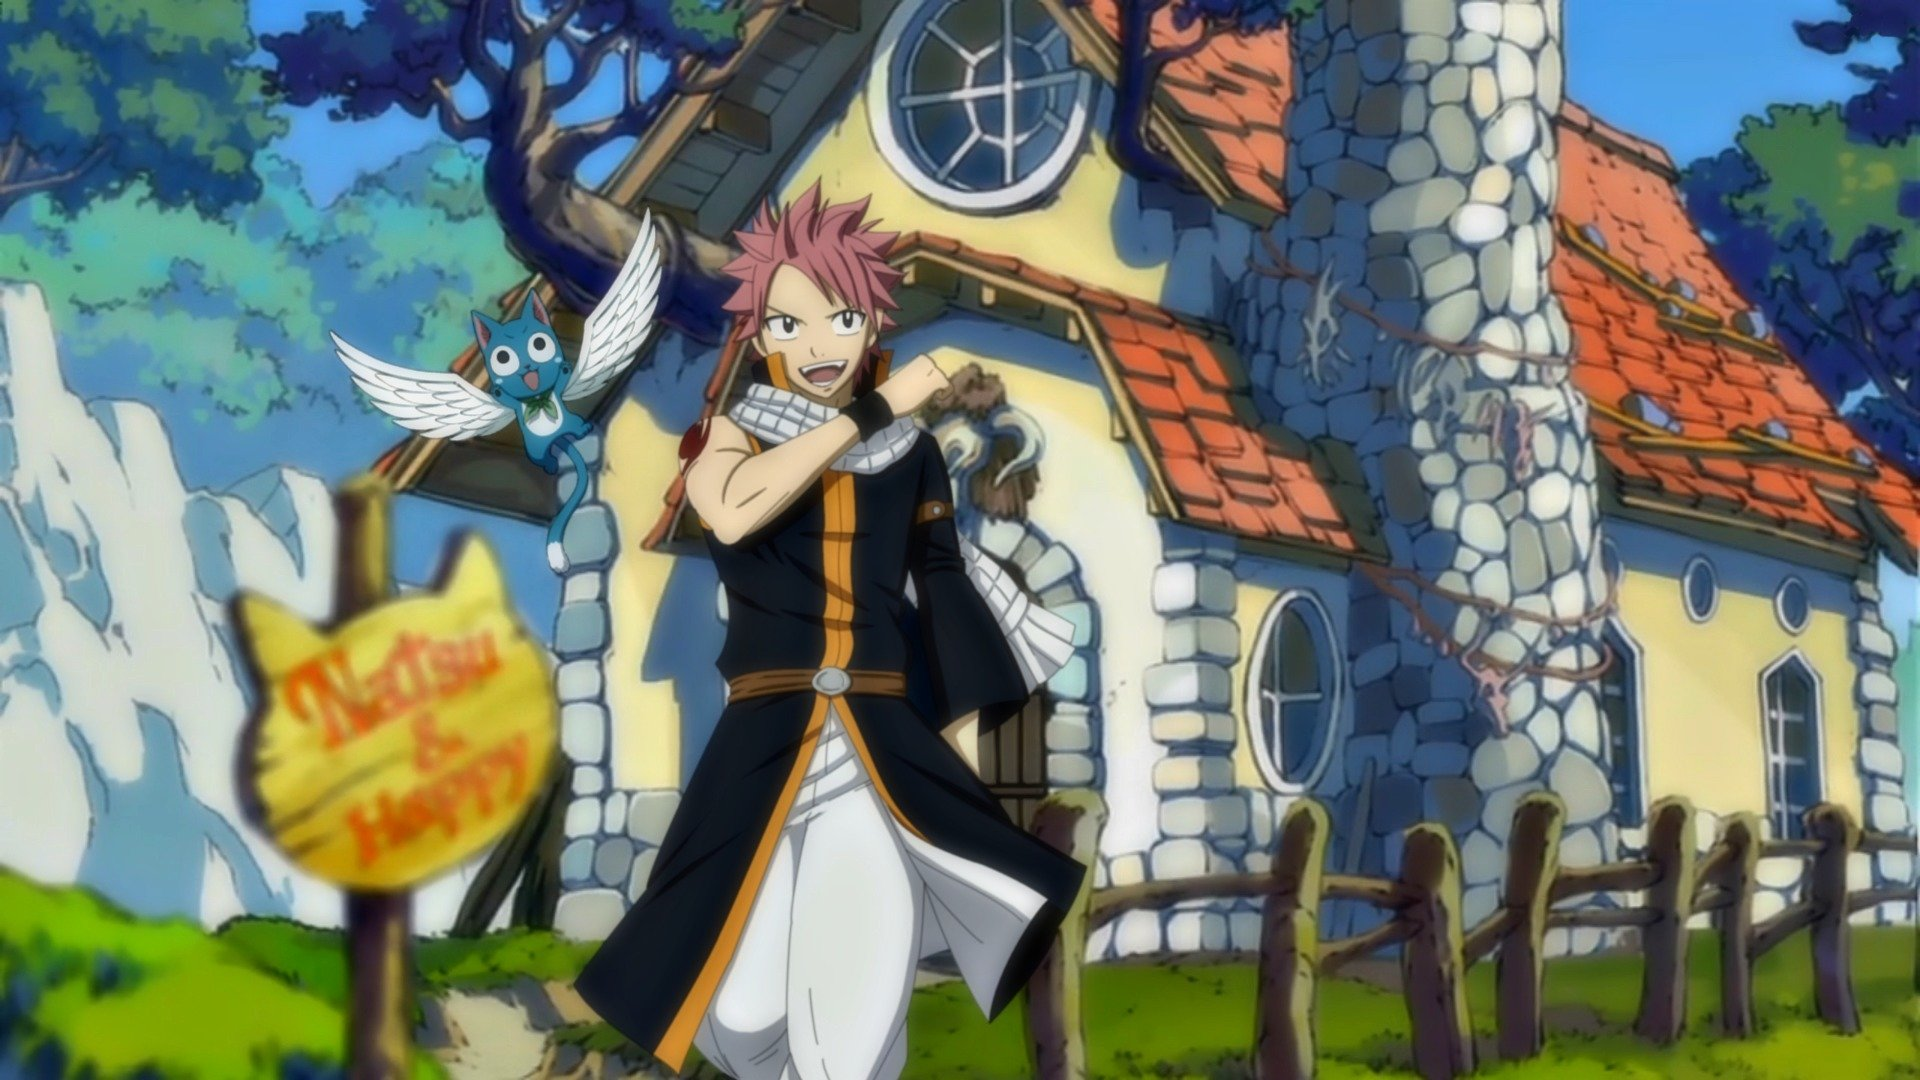 Download Full Hd Fairy Tail Computer Wallpaper Id - Full Hd Fairy Tail - HD Wallpaper